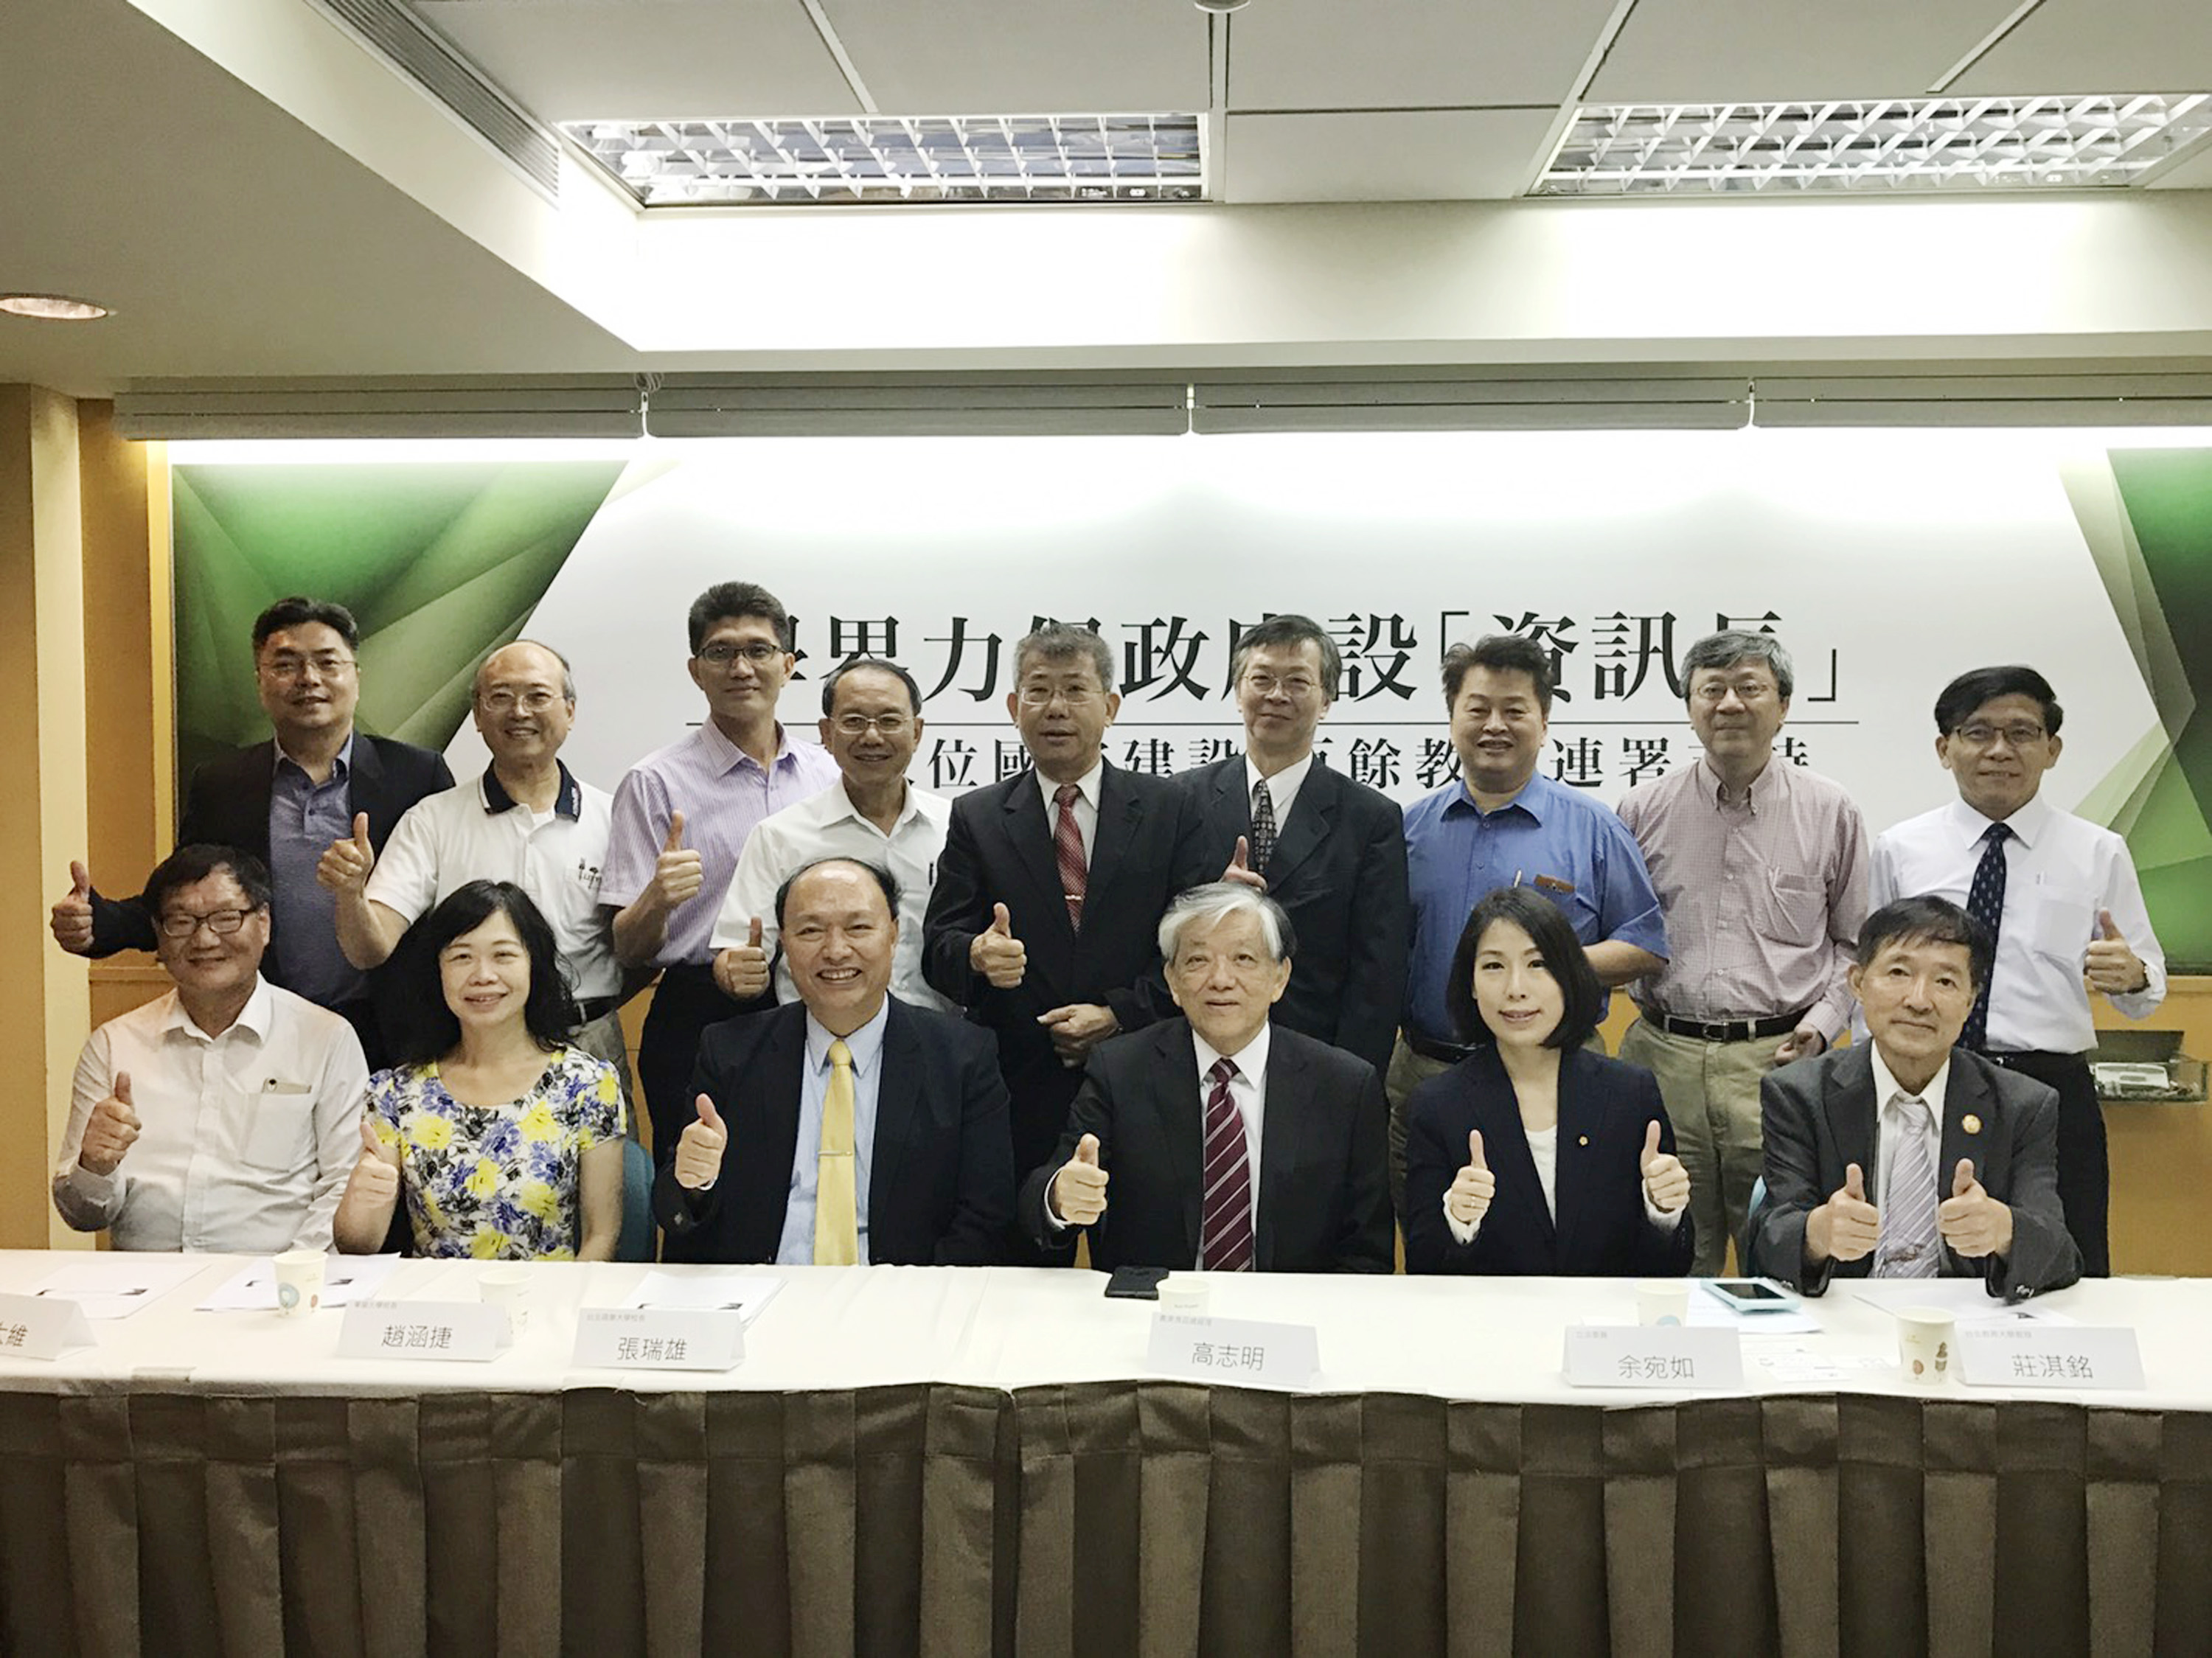 A group of enterprise executives, legislators, scholars, professors and civil group representatives held a press conference in Taipei on June 9 to urg